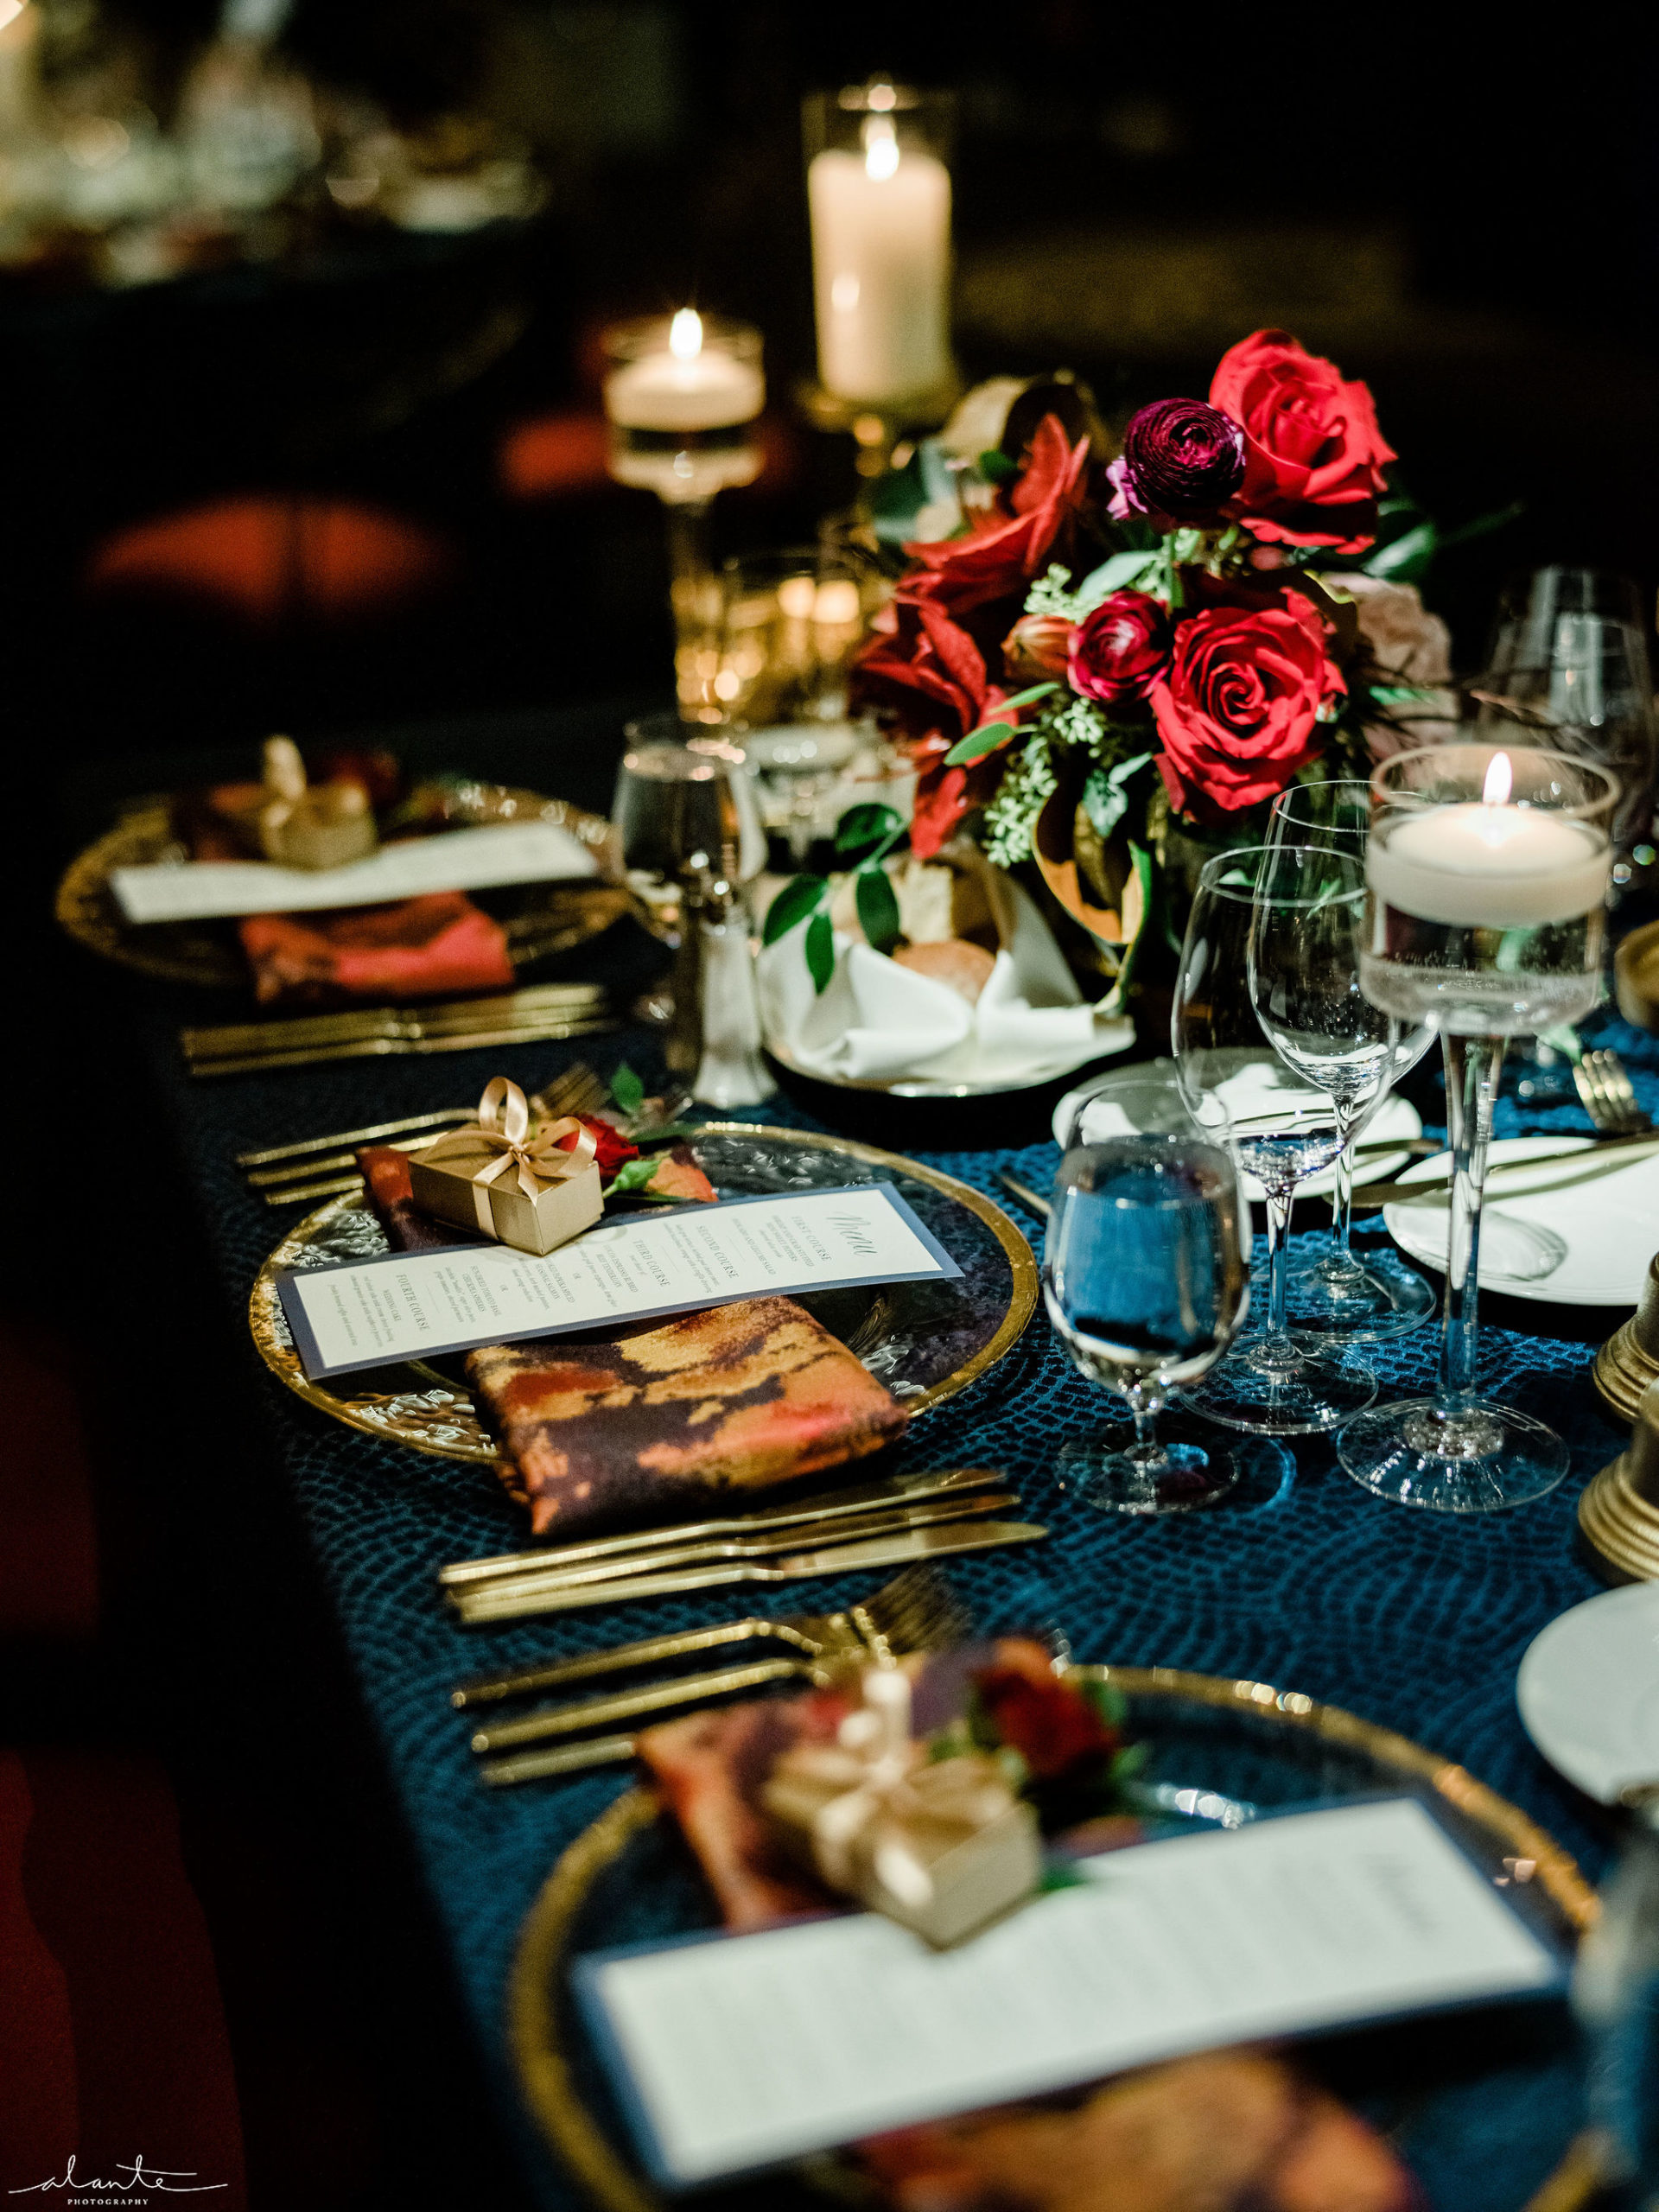 Red rose centerpiece at a December wedding with gold rimmed charger plates and gold flatware.